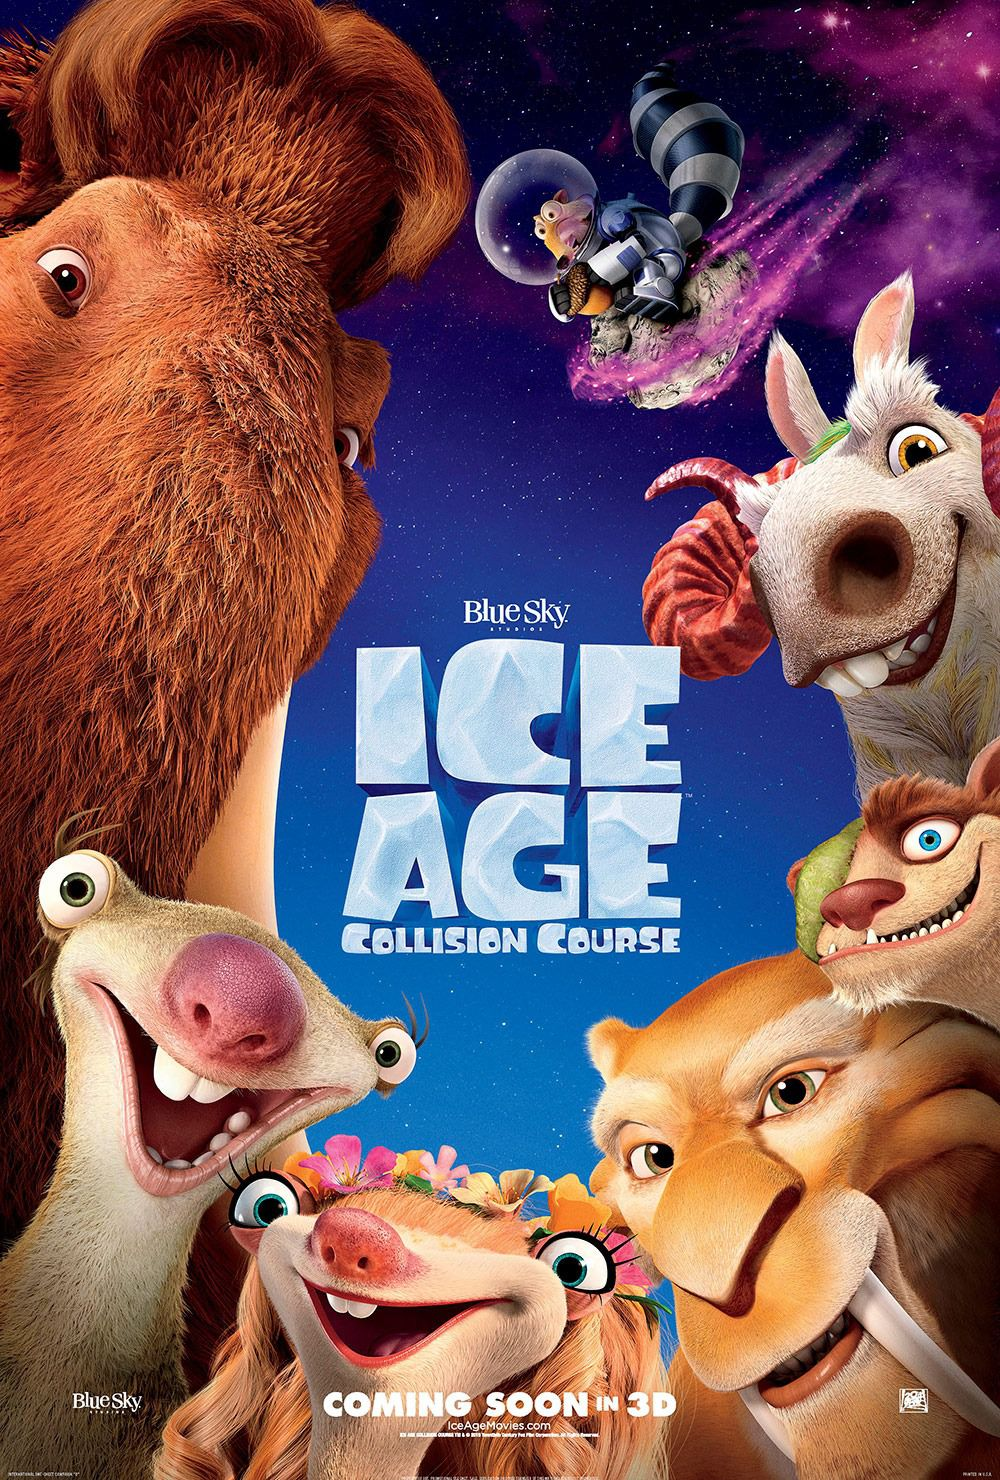 Ice Age 5 - Collision Course - Rotta di Collisione - animated film poster